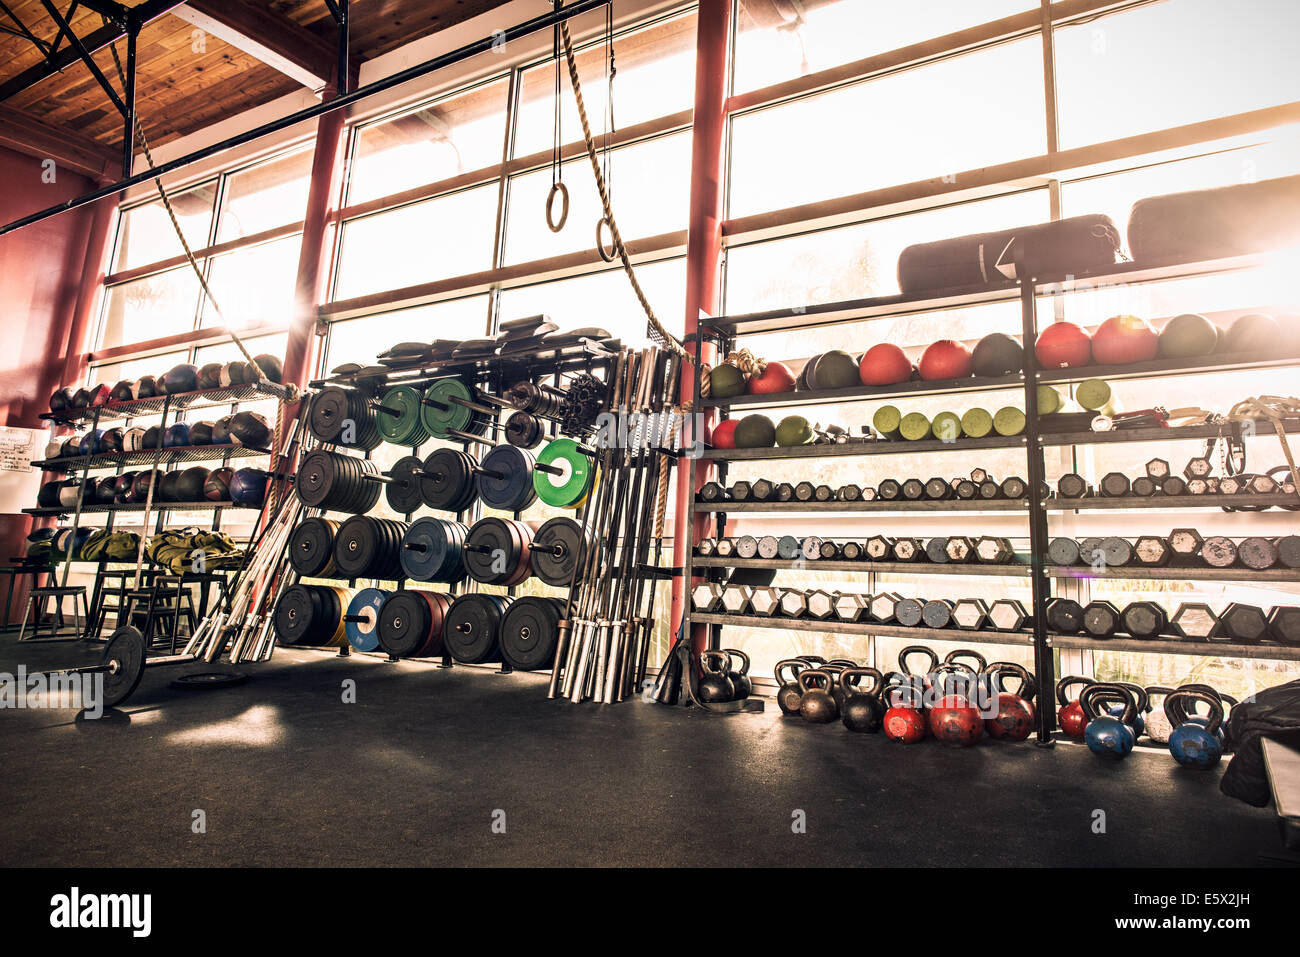 Gym equipment - weights, gym balls, kettle bells Stock Photo